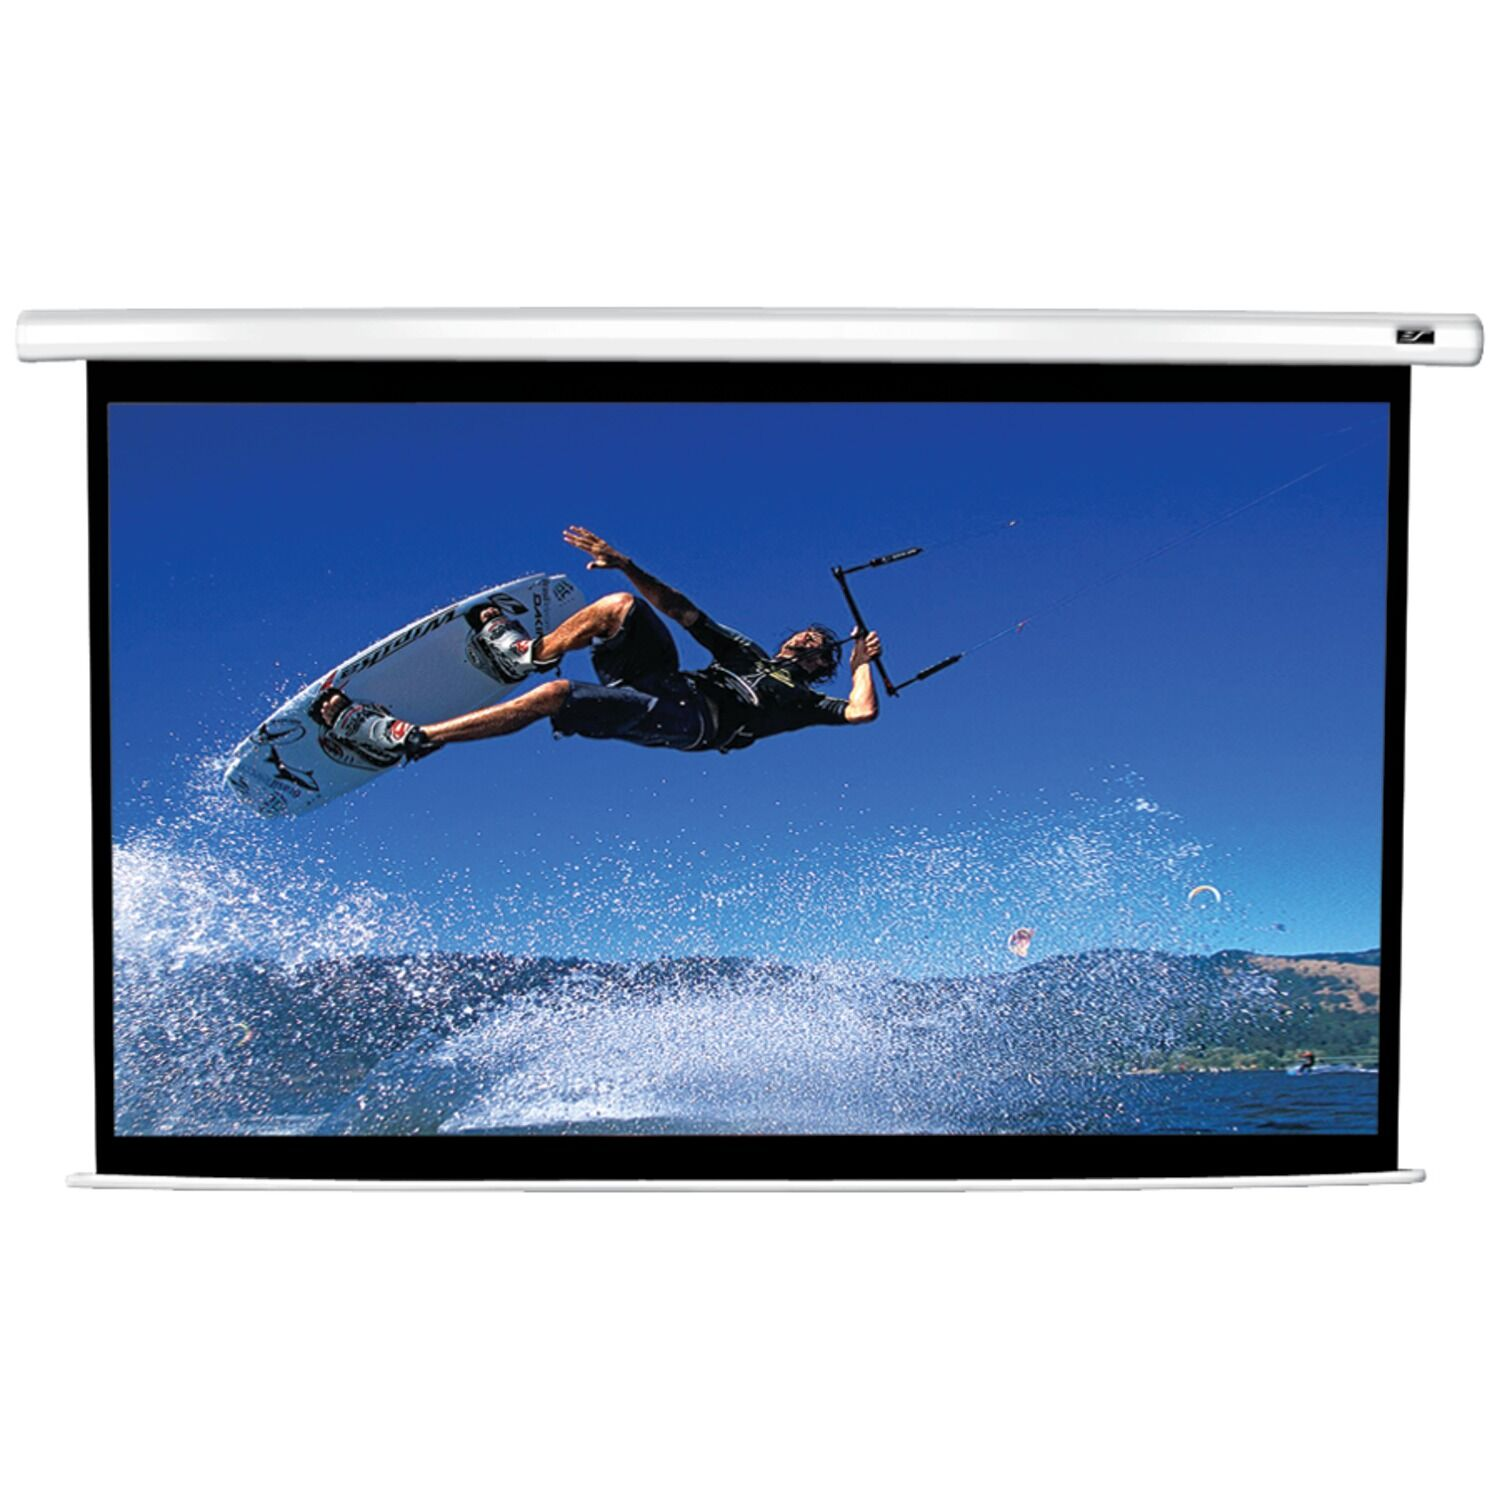 VMAX2 Series Electric Projection Screen Viewing Area: 49